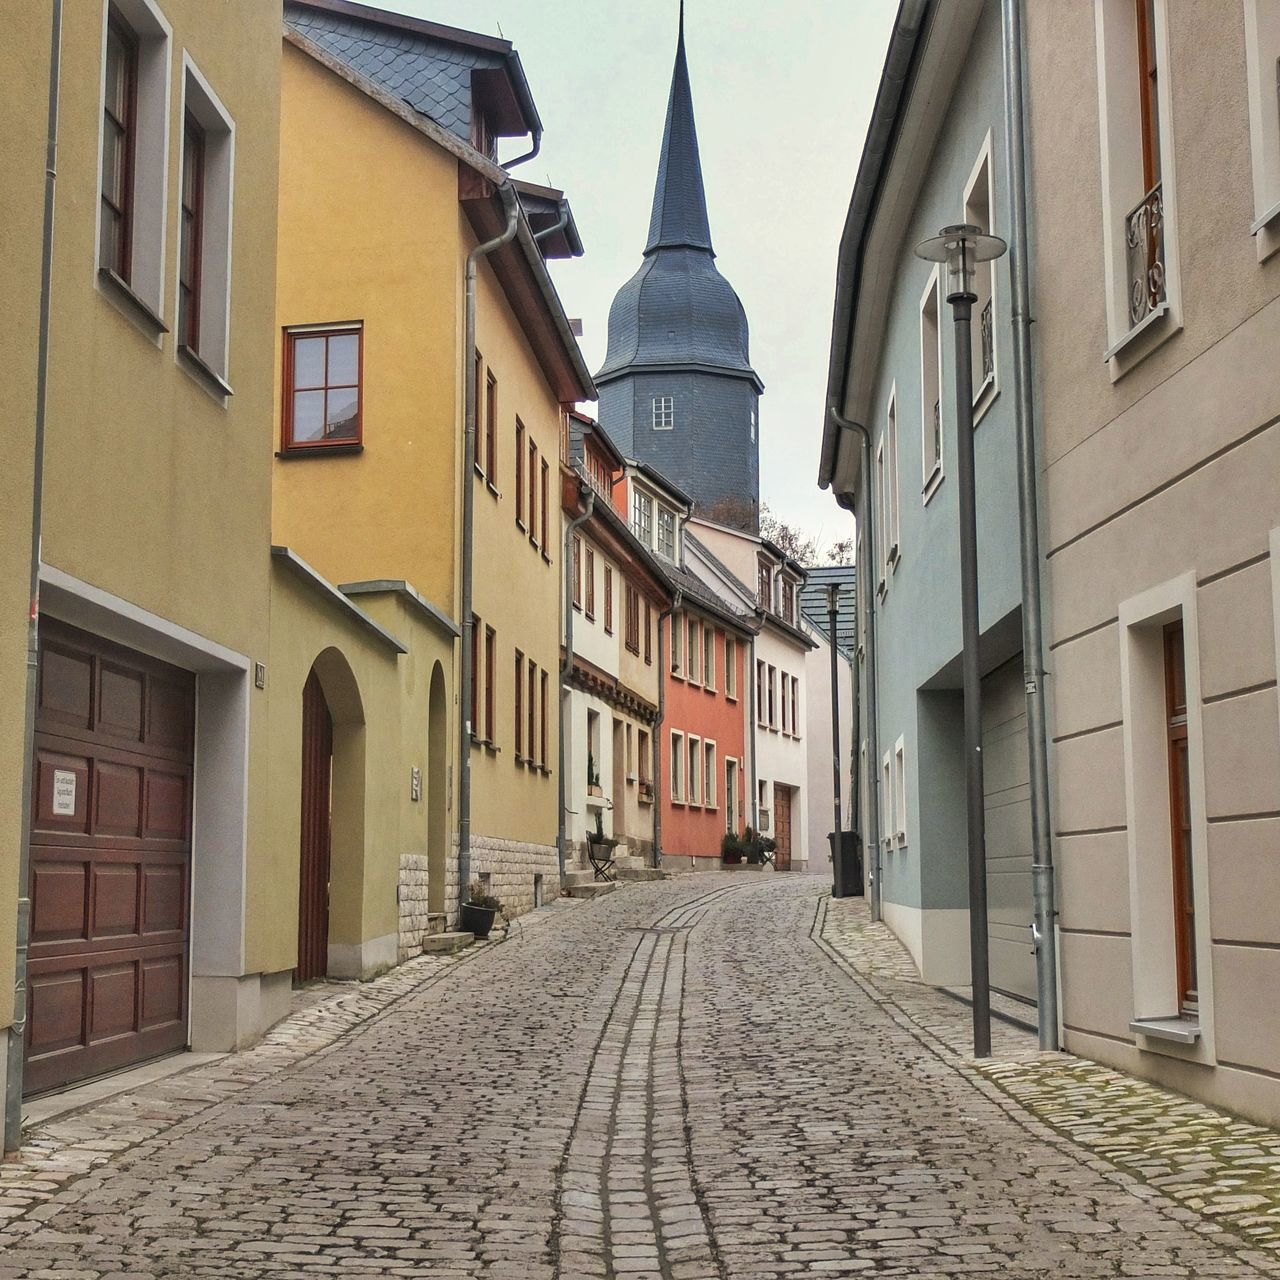 architecture, cobblestone, building exterior, built structure, no people, city, outdoors, sky, day